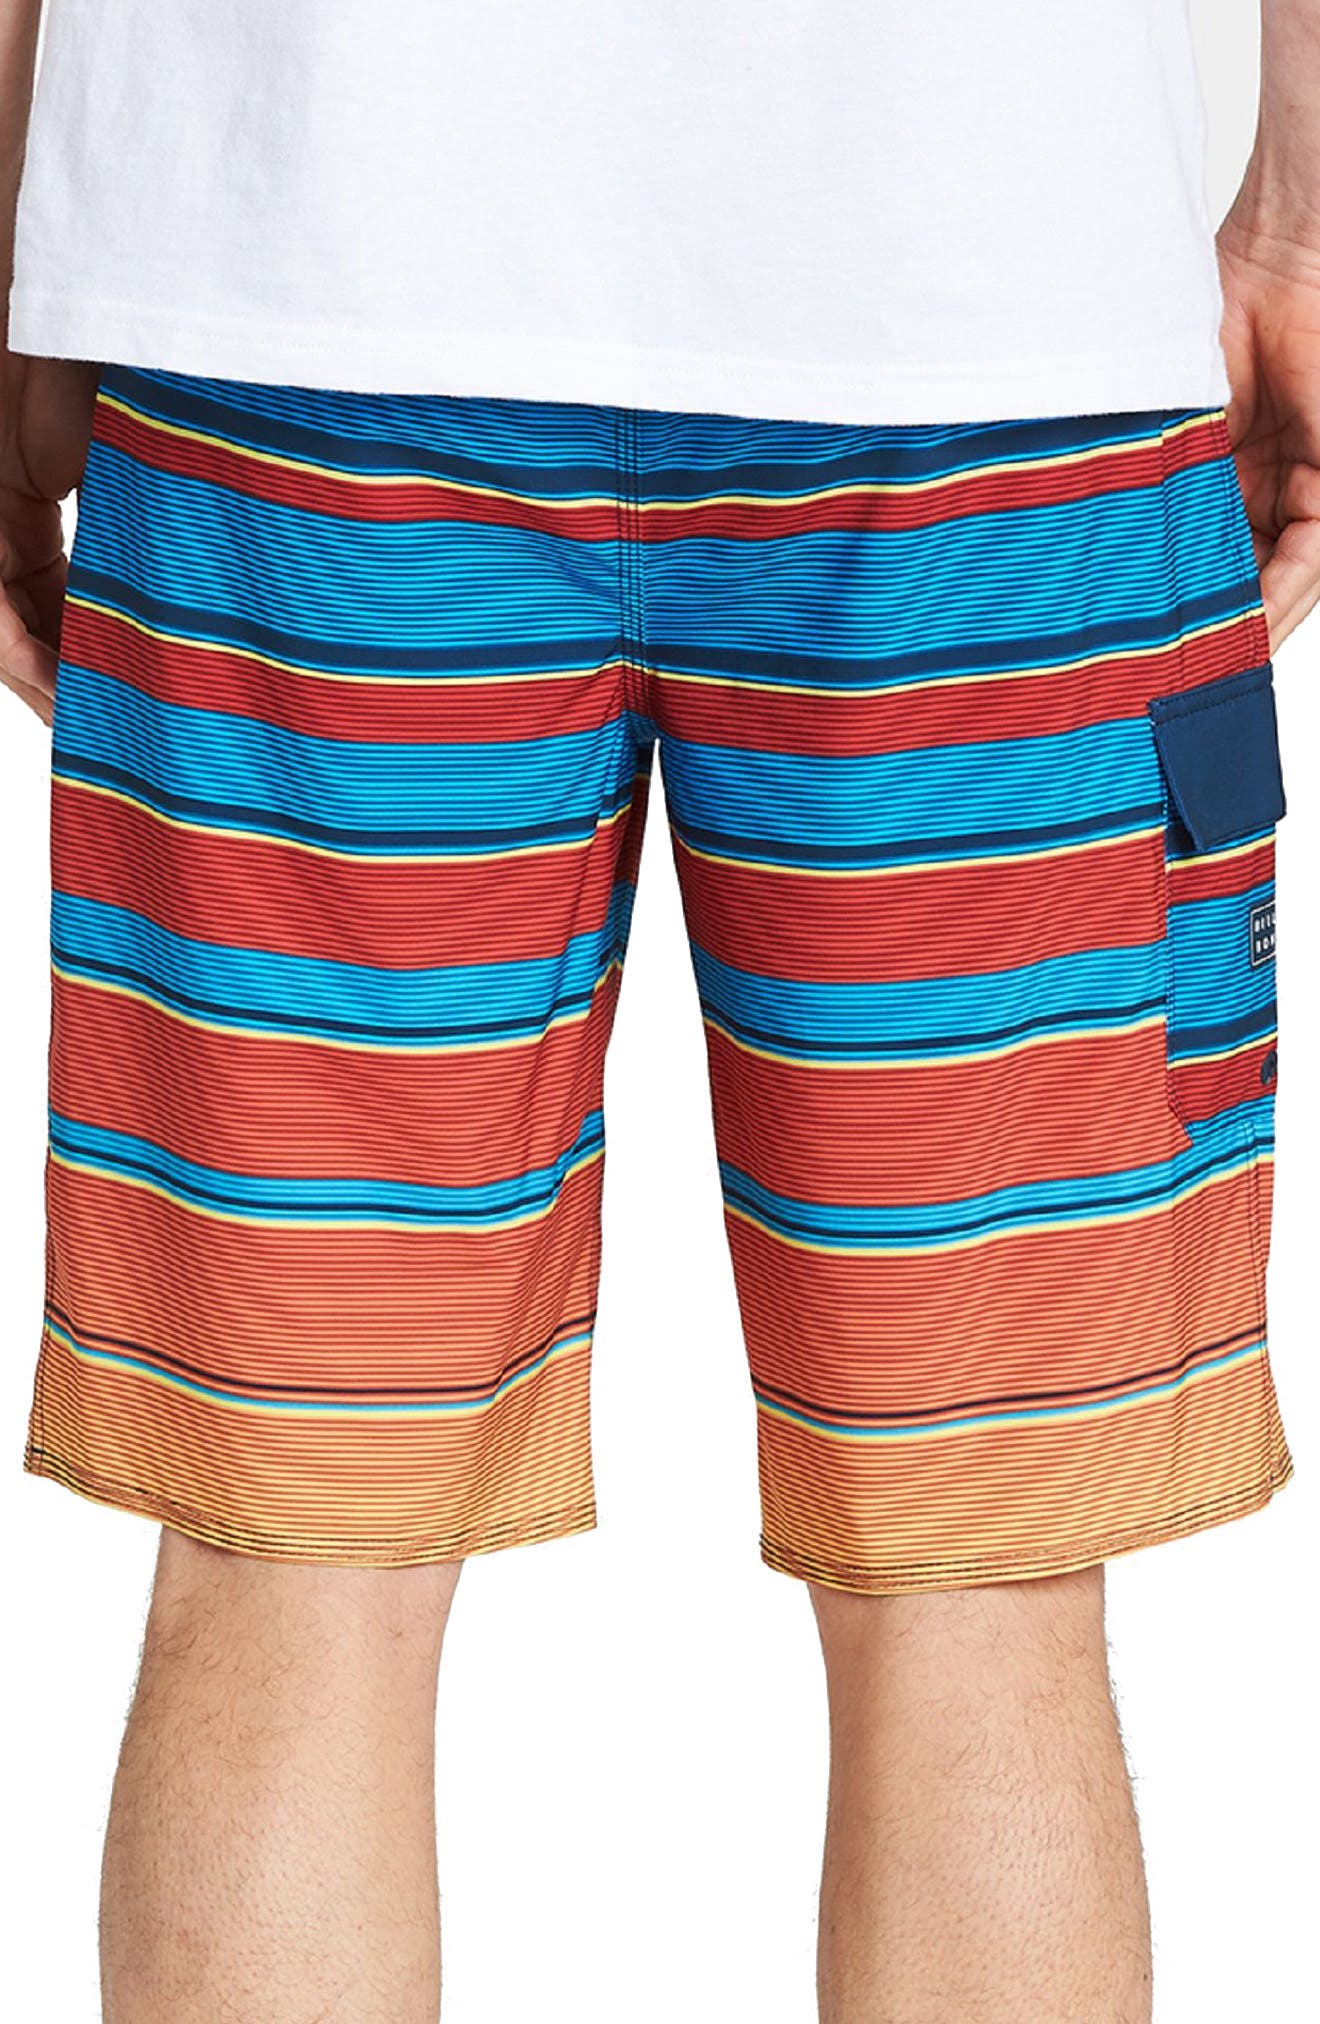 All Day X Stripe Board Shorts,                             Alternate thumbnail 4, color,